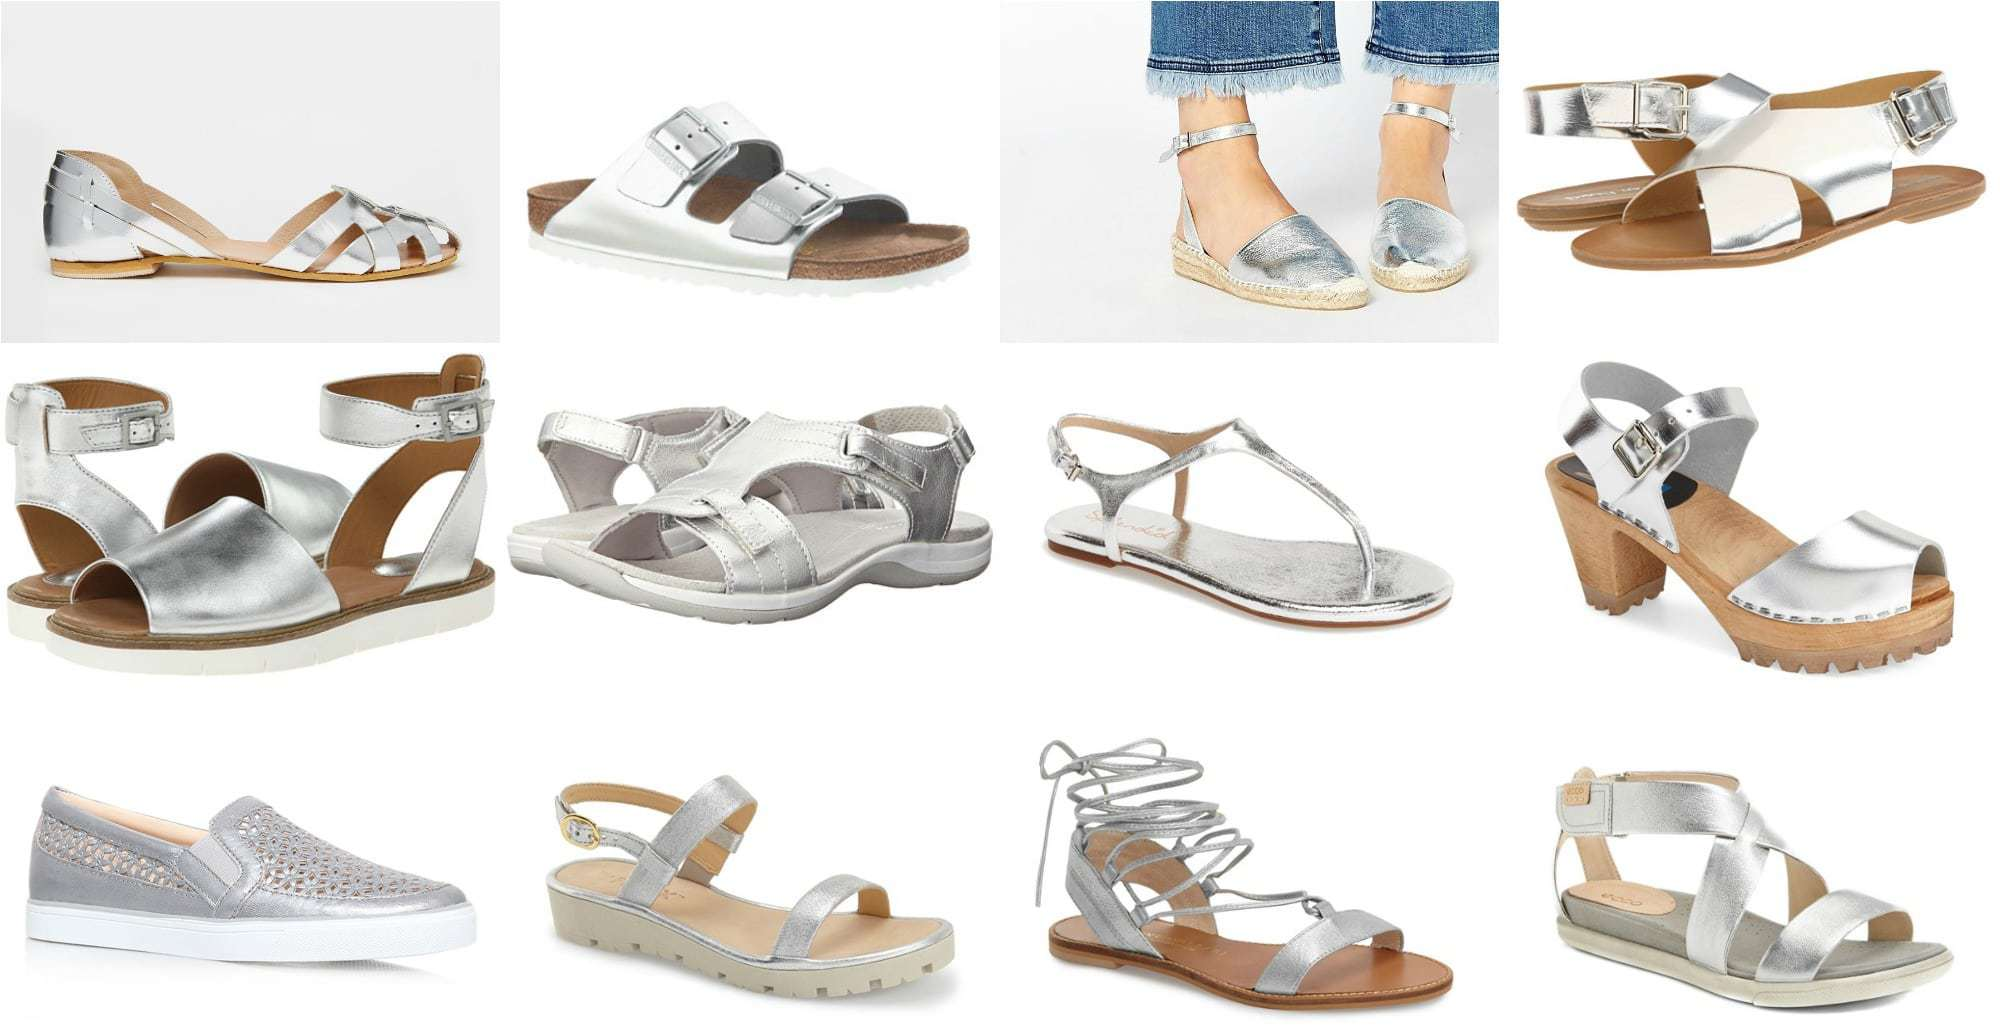 Wardrobe Oxygen - The Best silver metallic sandals and summer shoes for 2016